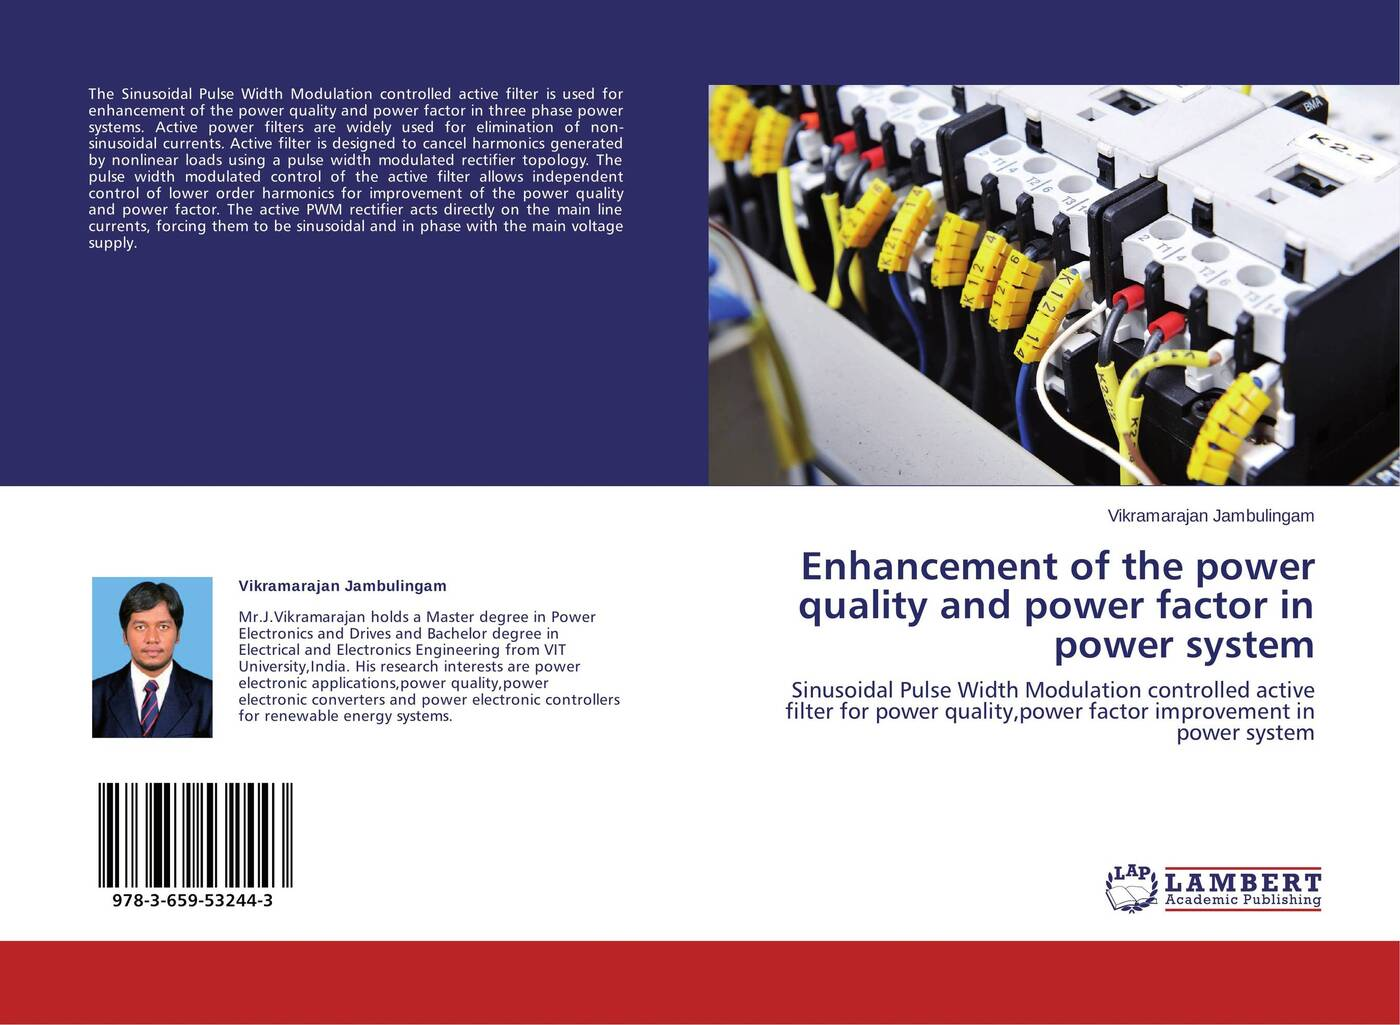 Vikramarajan Jambulingam Enhancement of the power quality and power factor in power system power supply bn44 00770a psfl940h06a l40hfp esm is used